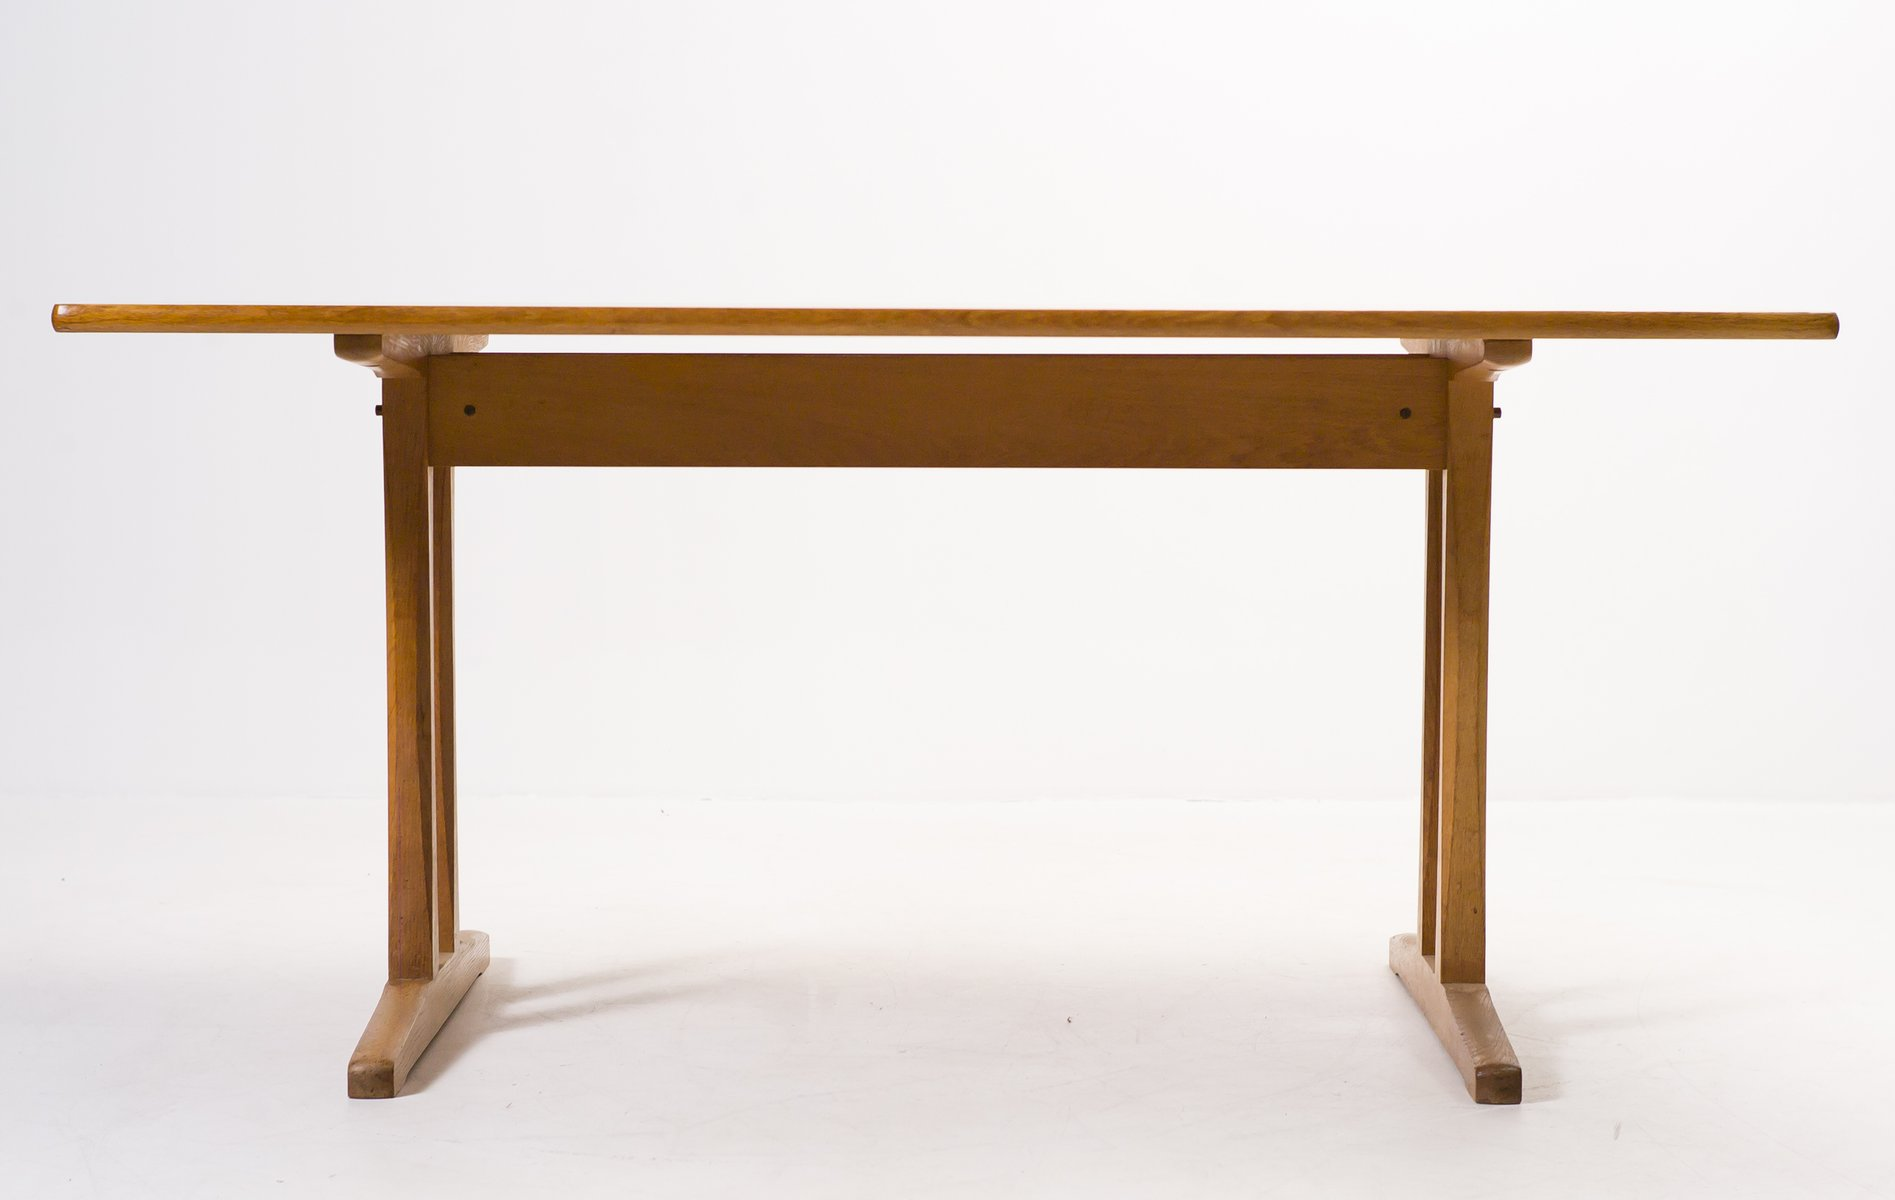 C18 Shaker Table By Børge Mogensen For FDB, 1969 For Sale At Pamono